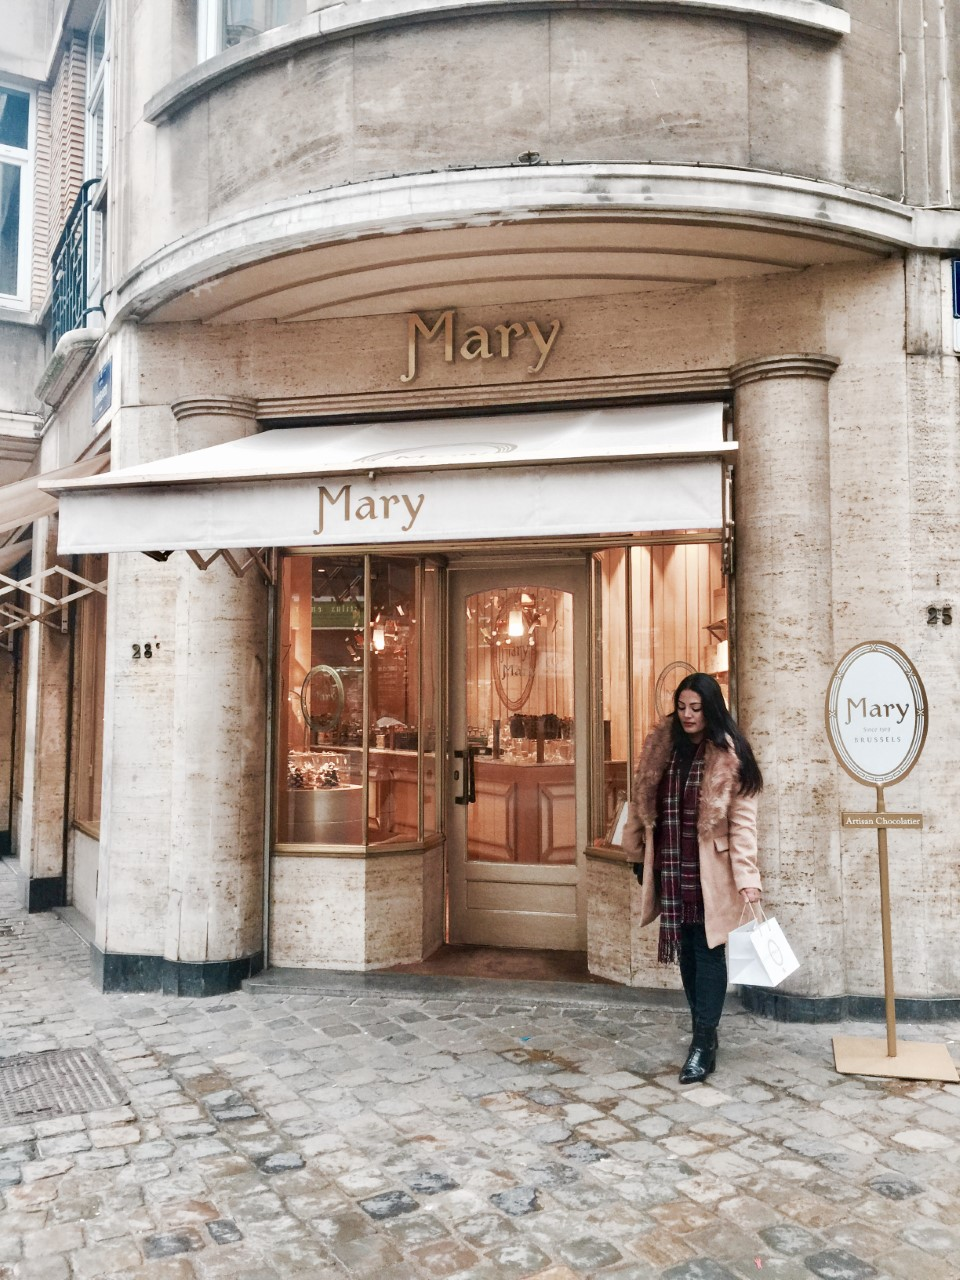 MARY'S CHOCOLATIER - Mary is the grande dame of Belgian chocolate.The 92-year-old chocolatier is a favorite of the Belgian royal family, filled with rows of caramel, marzipan, chocolate mousse, ganache and cream-filled pralines. It easy became my favourite too!